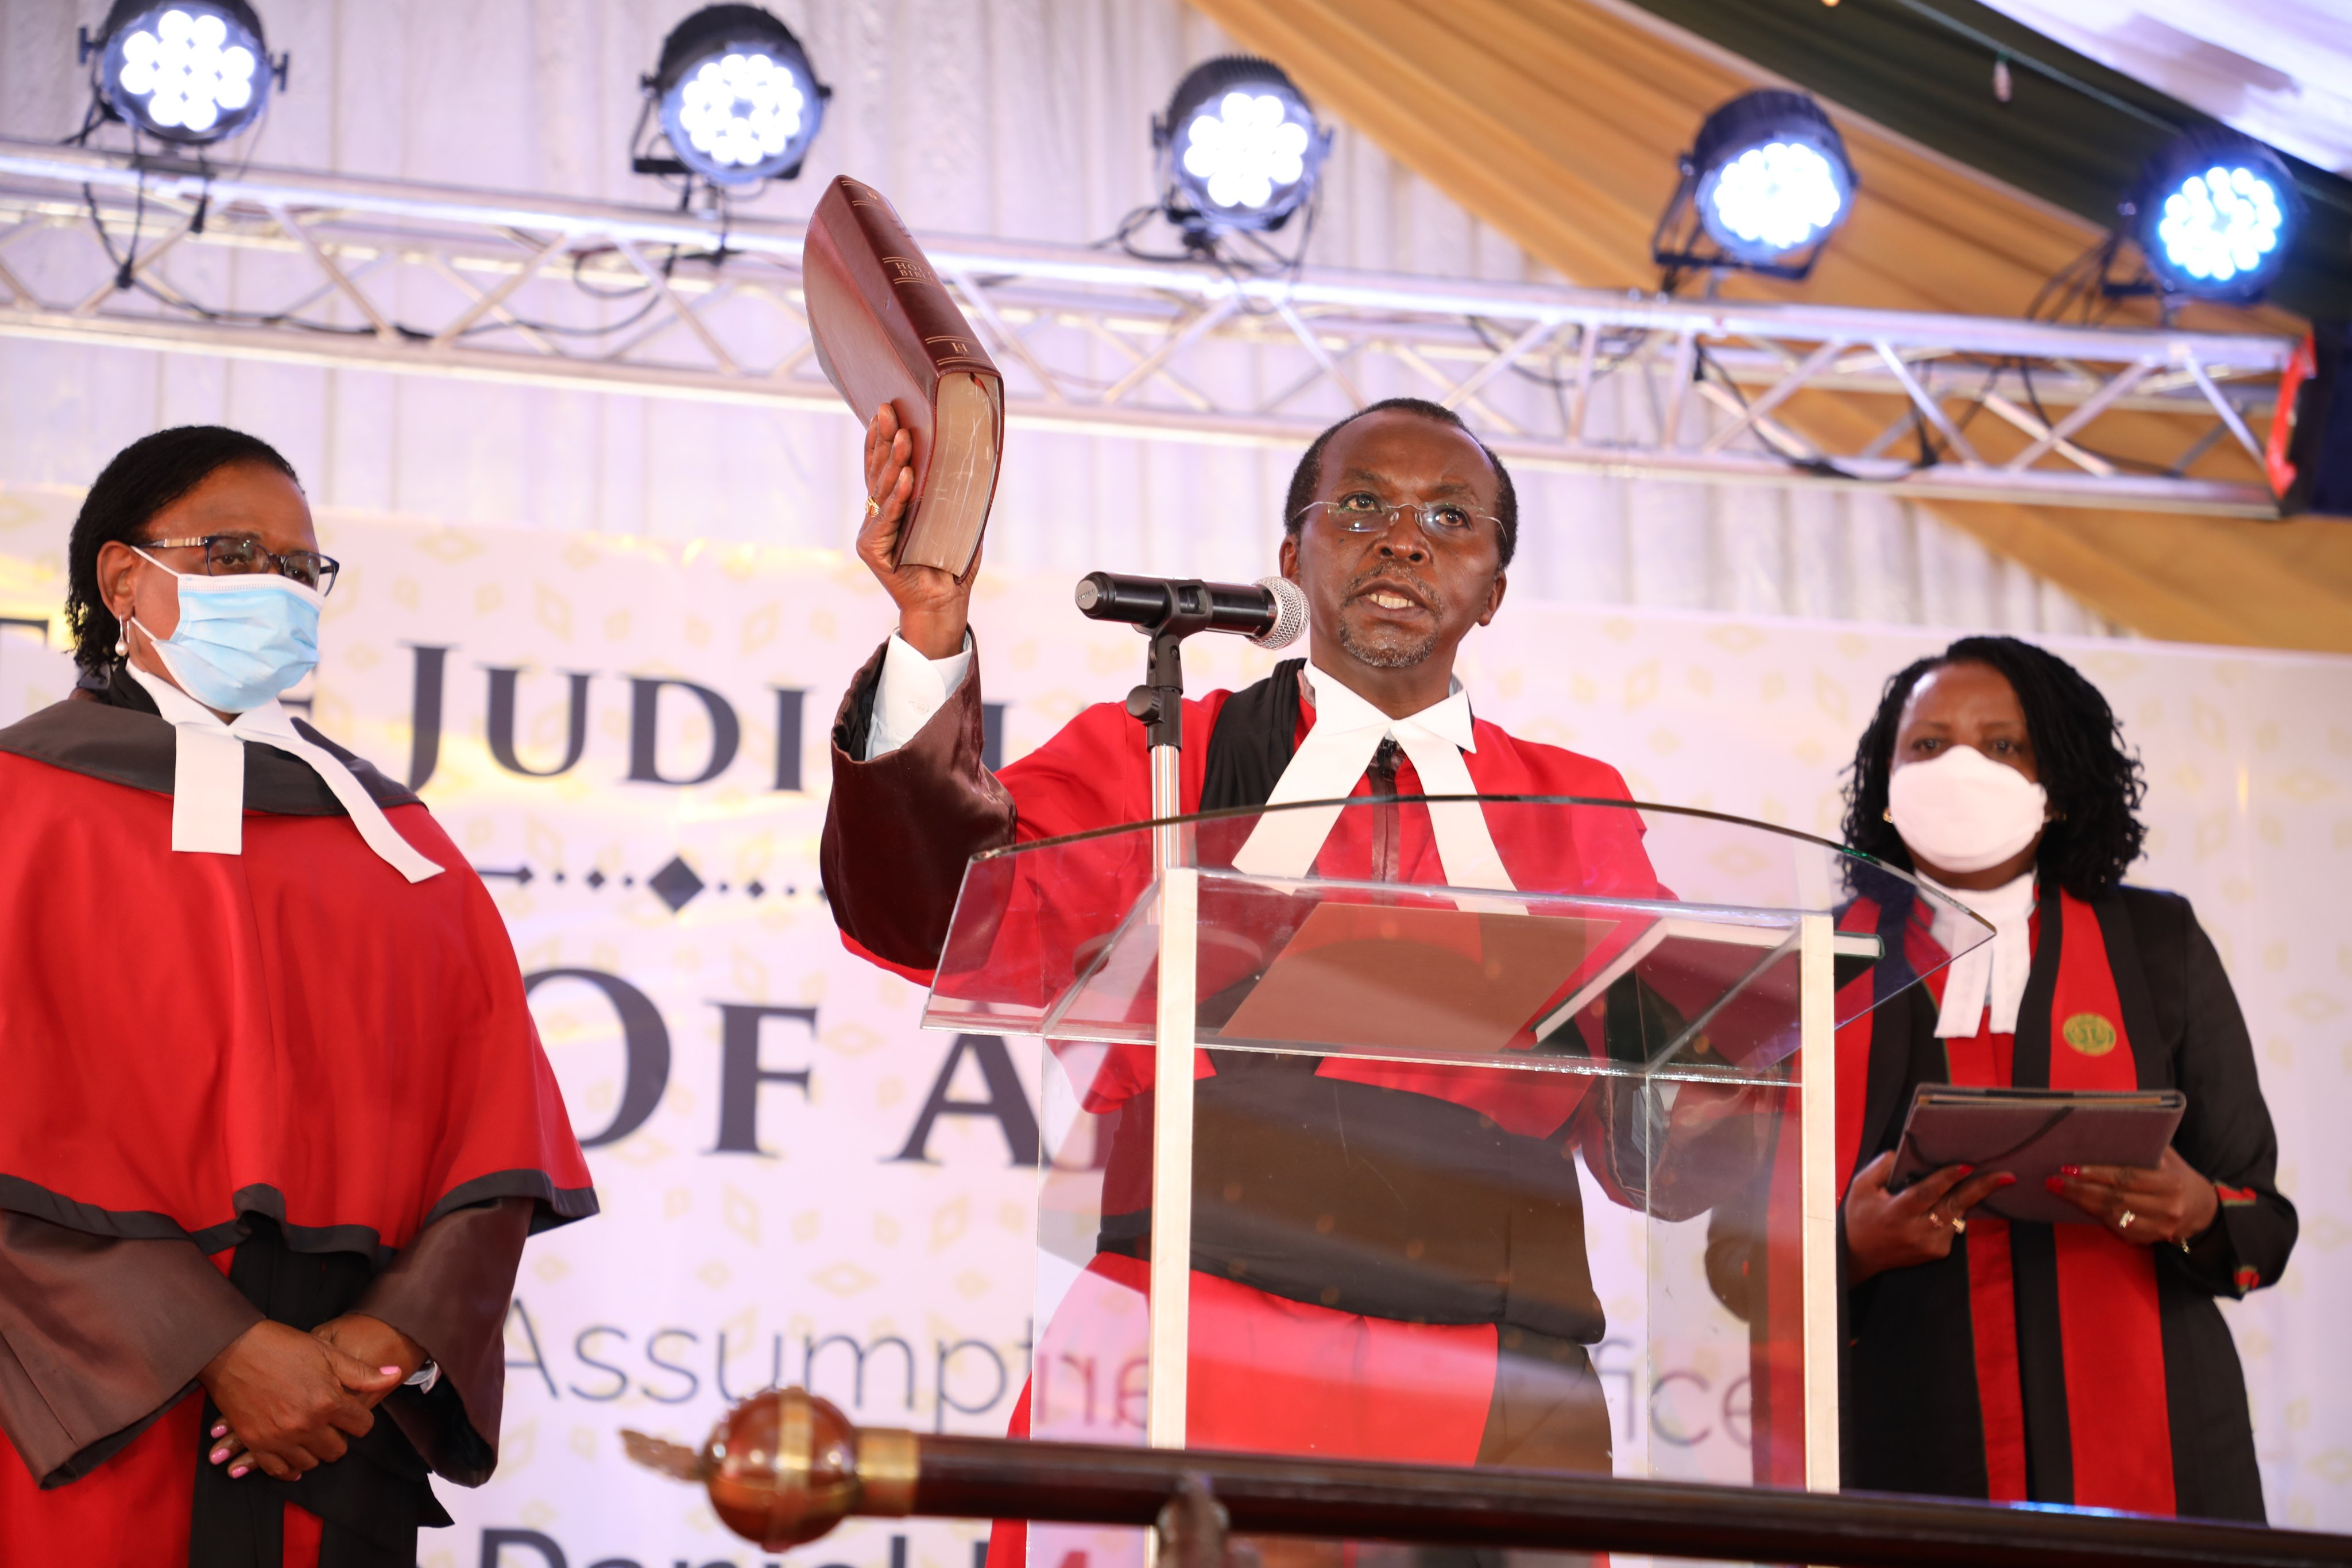 Justice Musinga Officially assumes Office as the Court of Appeal President